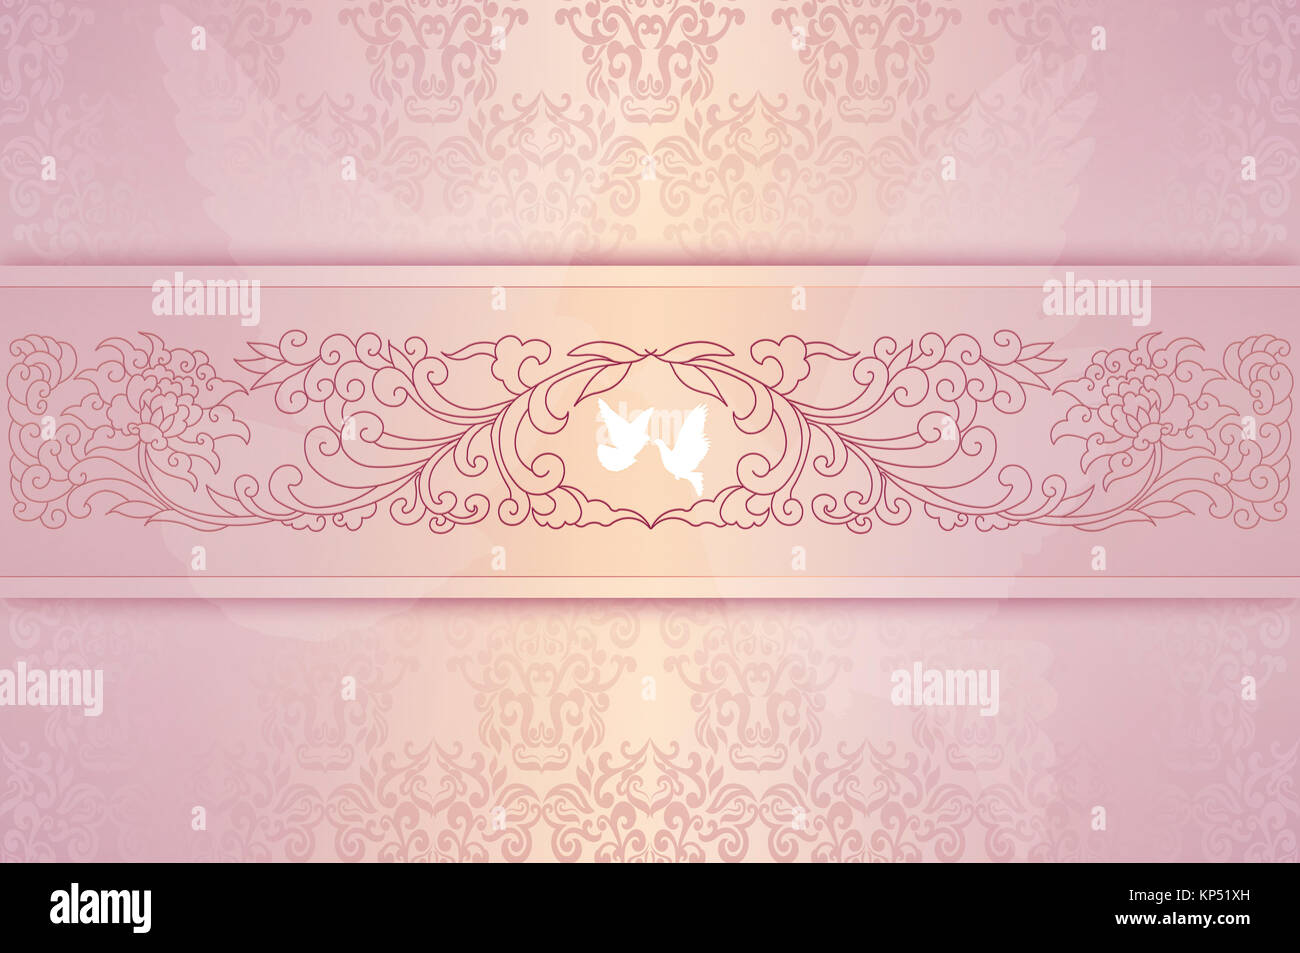 https www alamy com stock image template of wedding invitation cardelegant floral background with 168527033 html